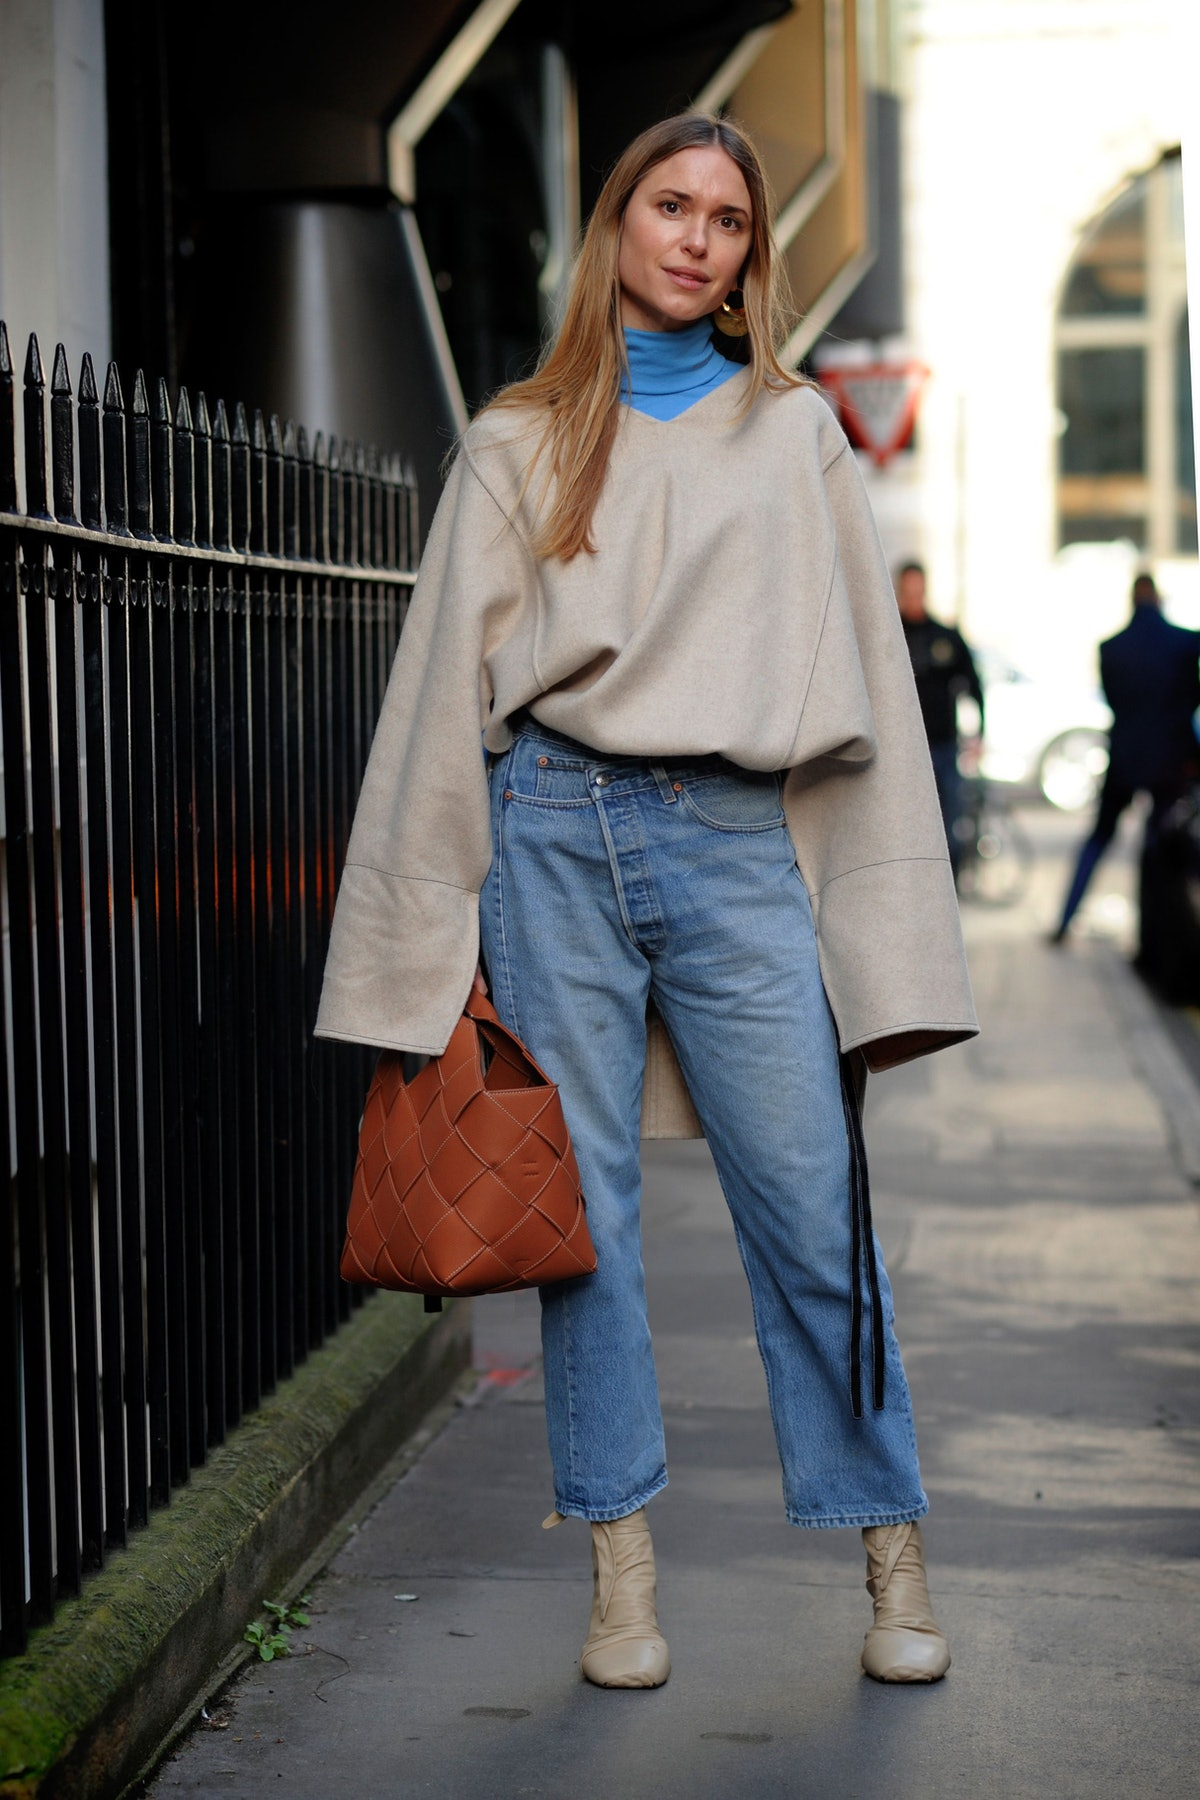 A street style photo featuring an outfit of baggy jeans worn with an oversized wool topper for an ul...